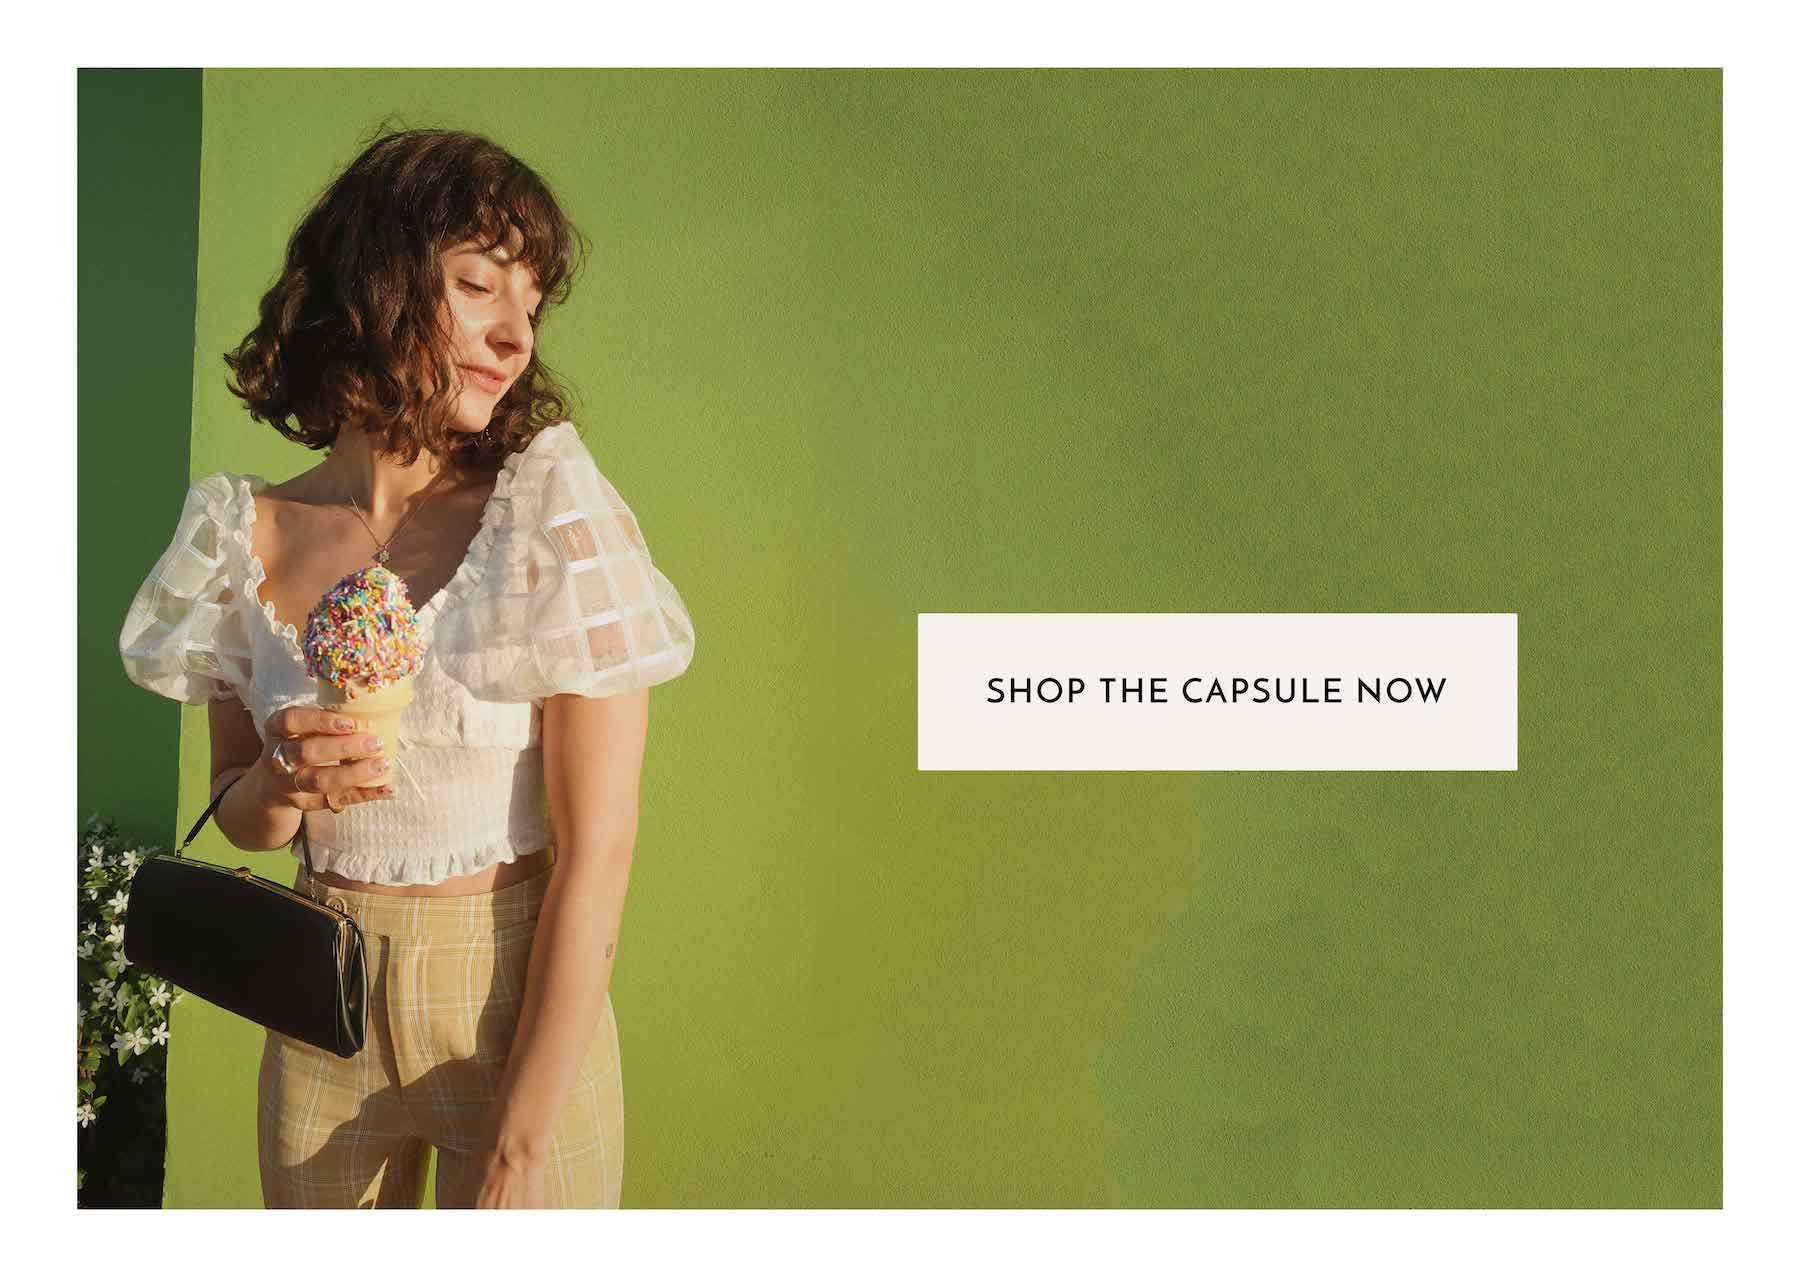 Alyssa Coscarelli x Petite Studio capsule collection